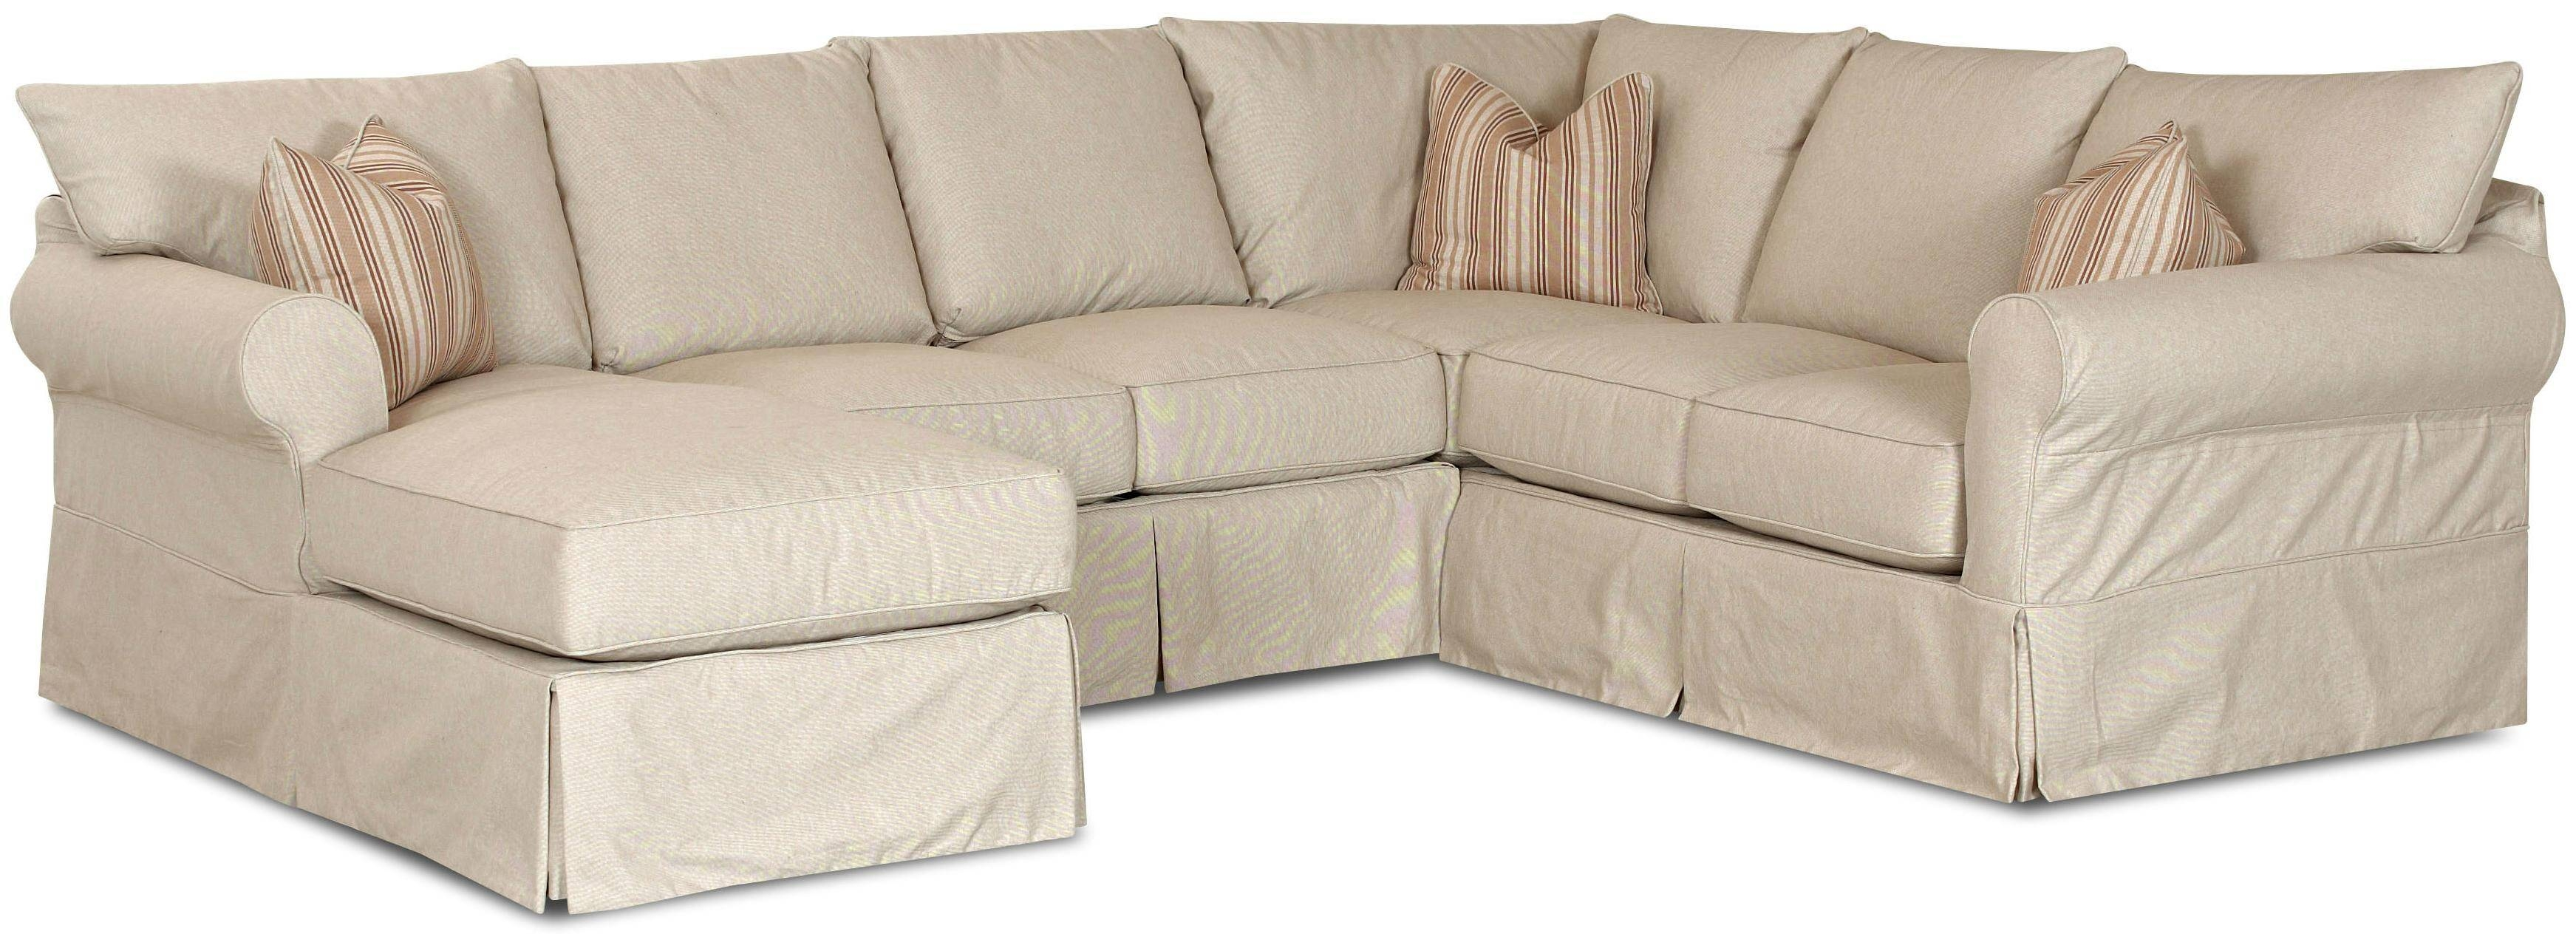 Inspirations: Interesting Furniture Sectional Sofa Slipcovers For Throughout Chaise Sofa Covers (View 16 of 30)